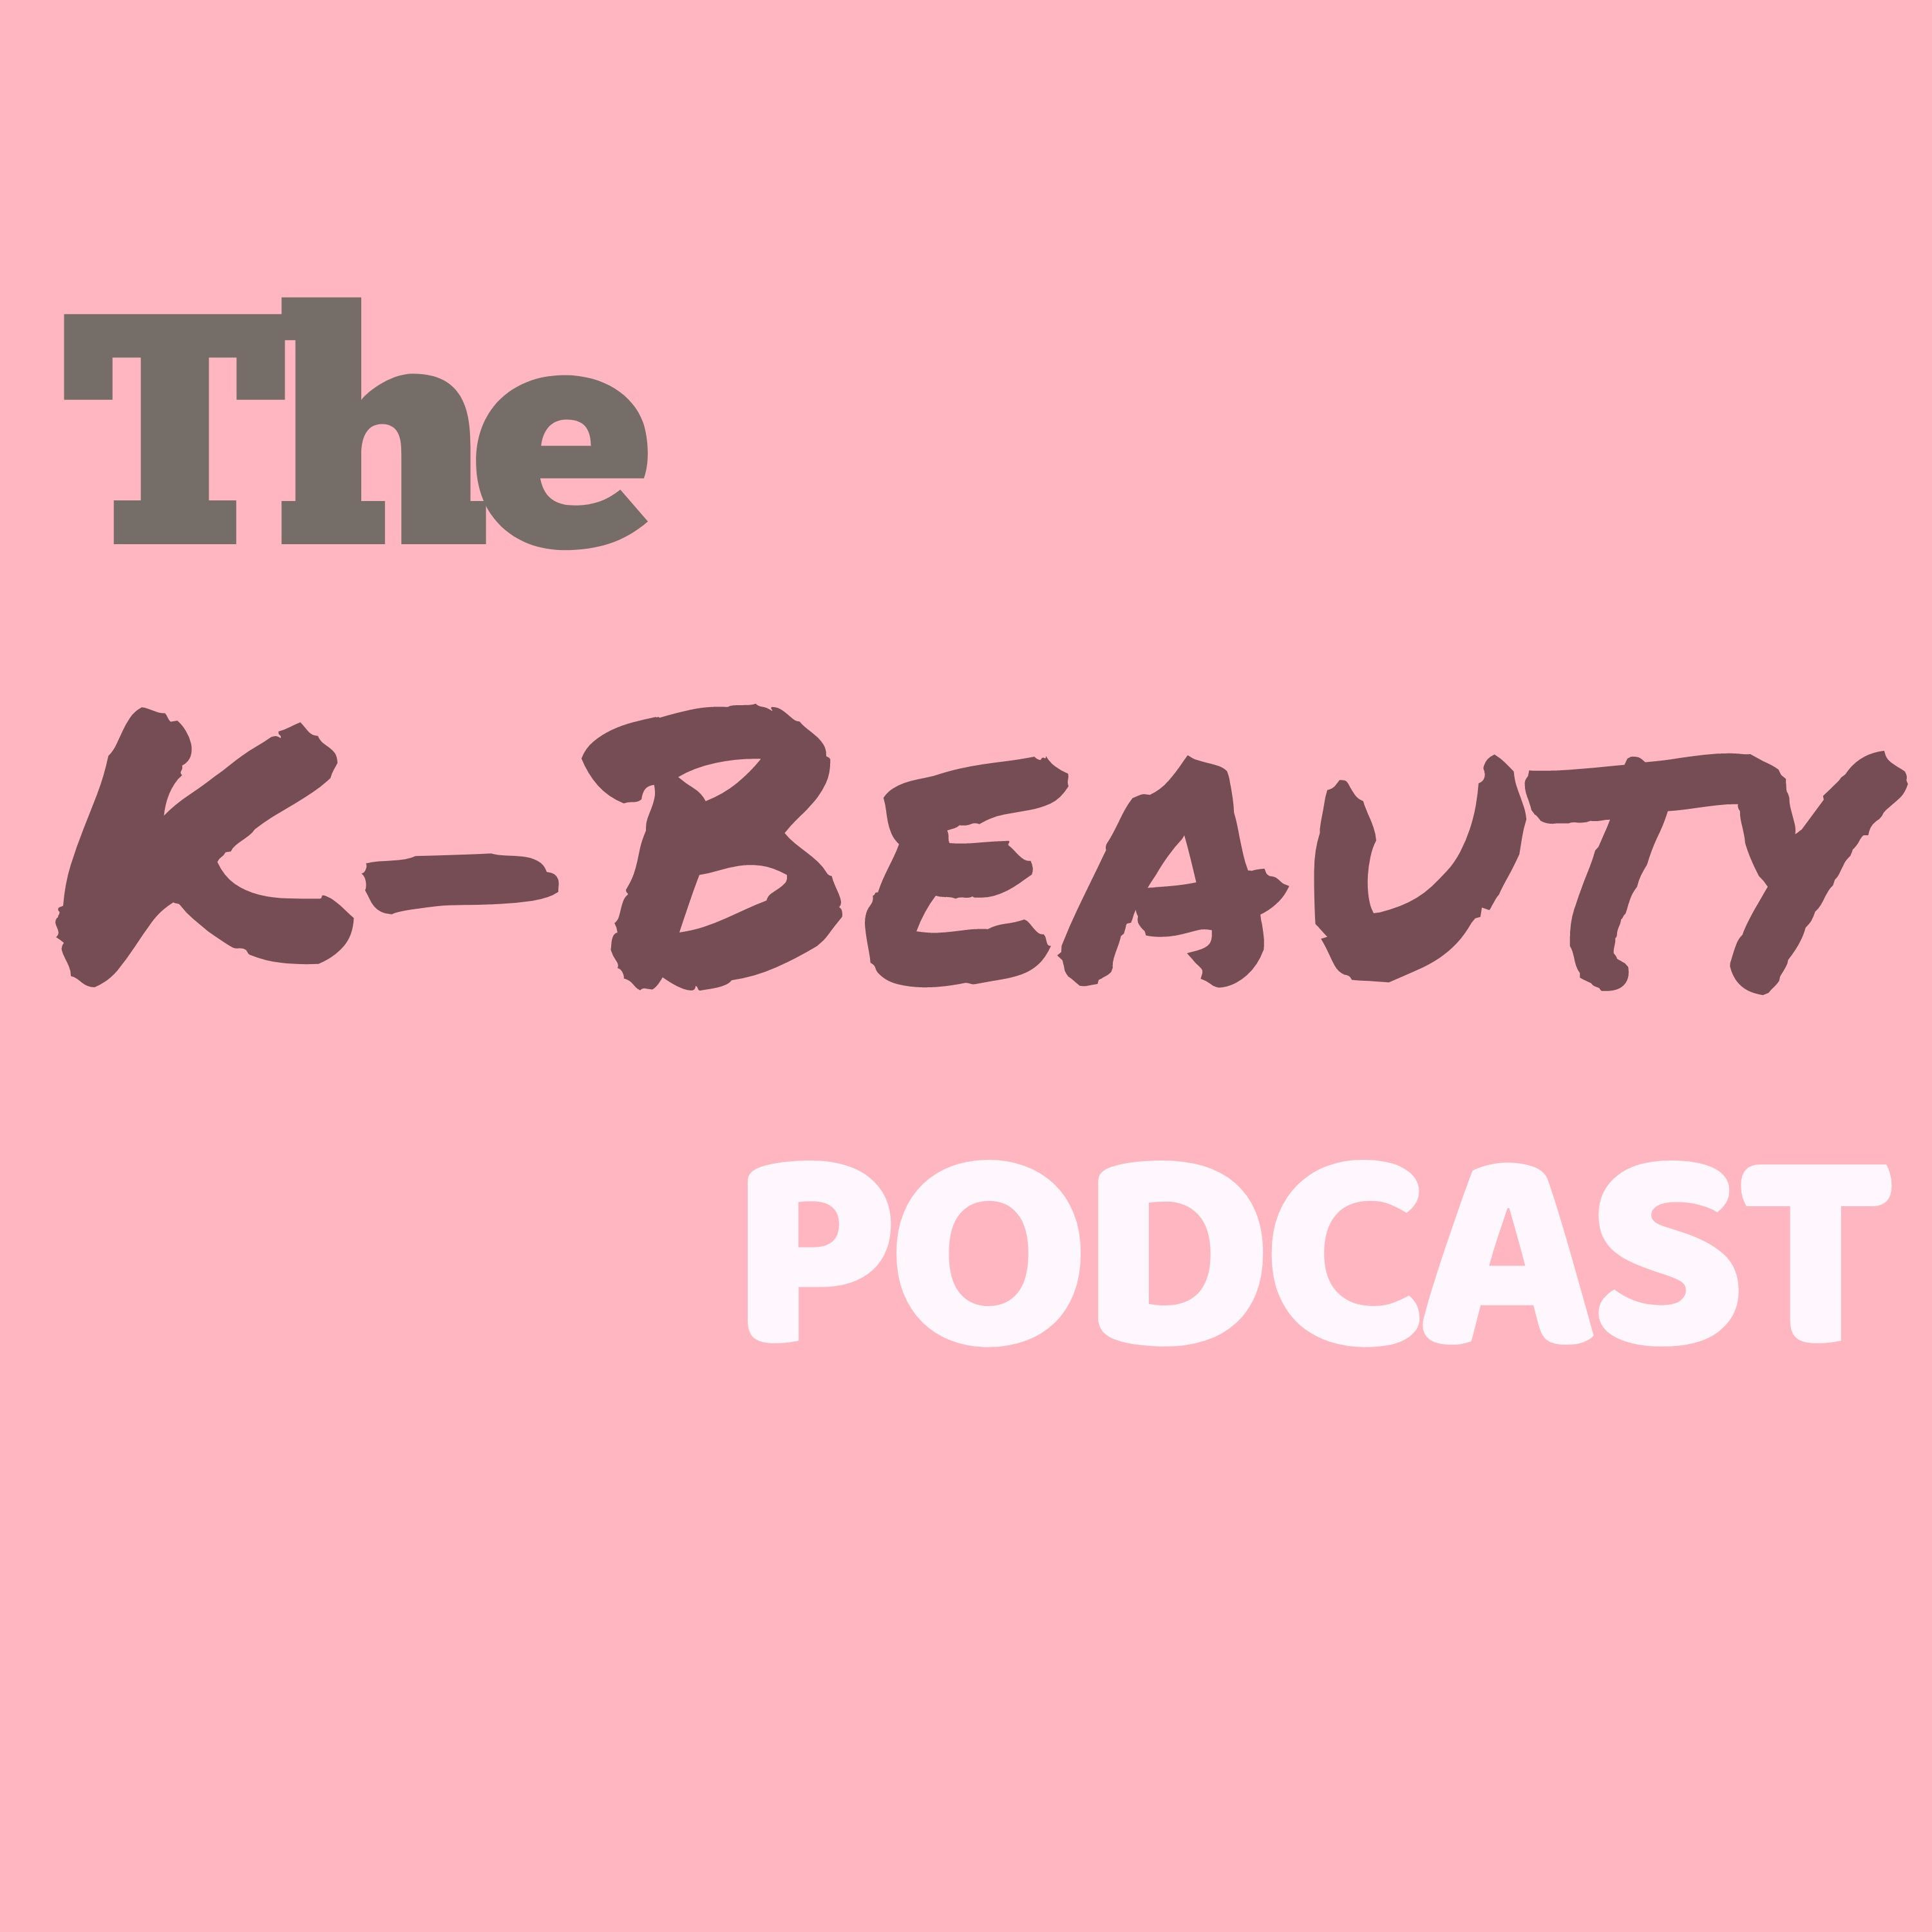 My K-Beauty Trend Forecast for 2020